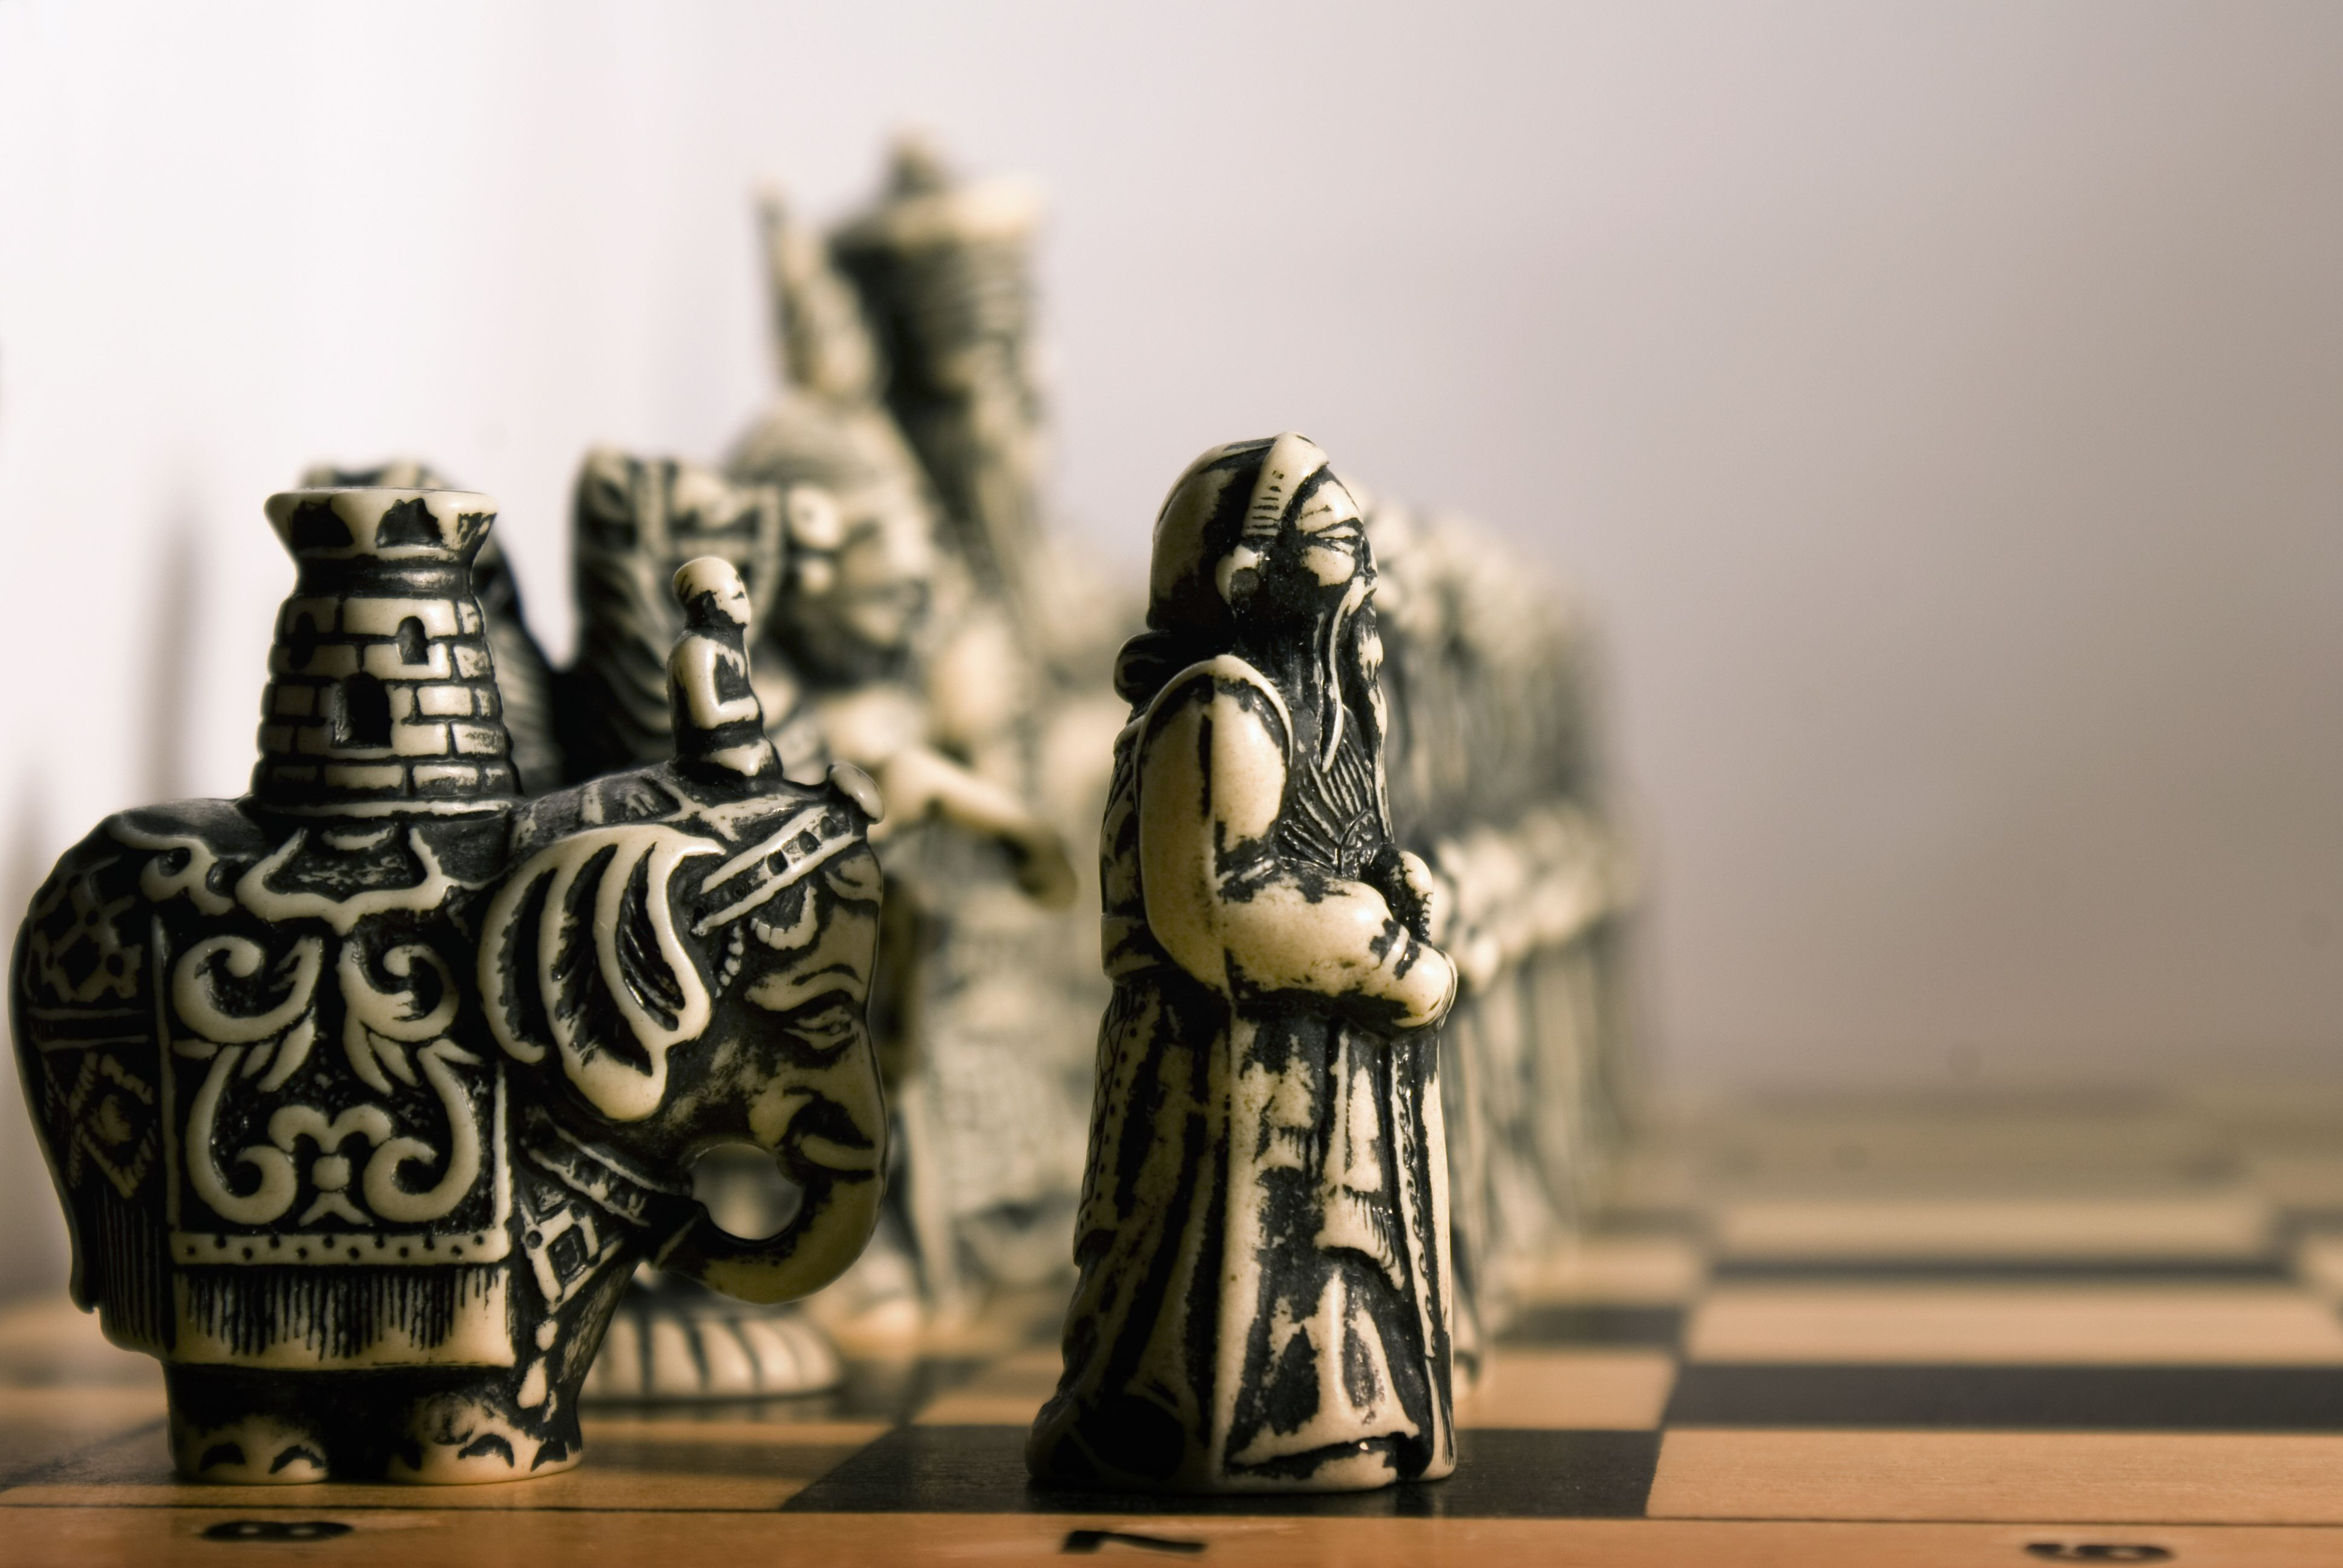 Pin By Fran Boston On Chess Pieces